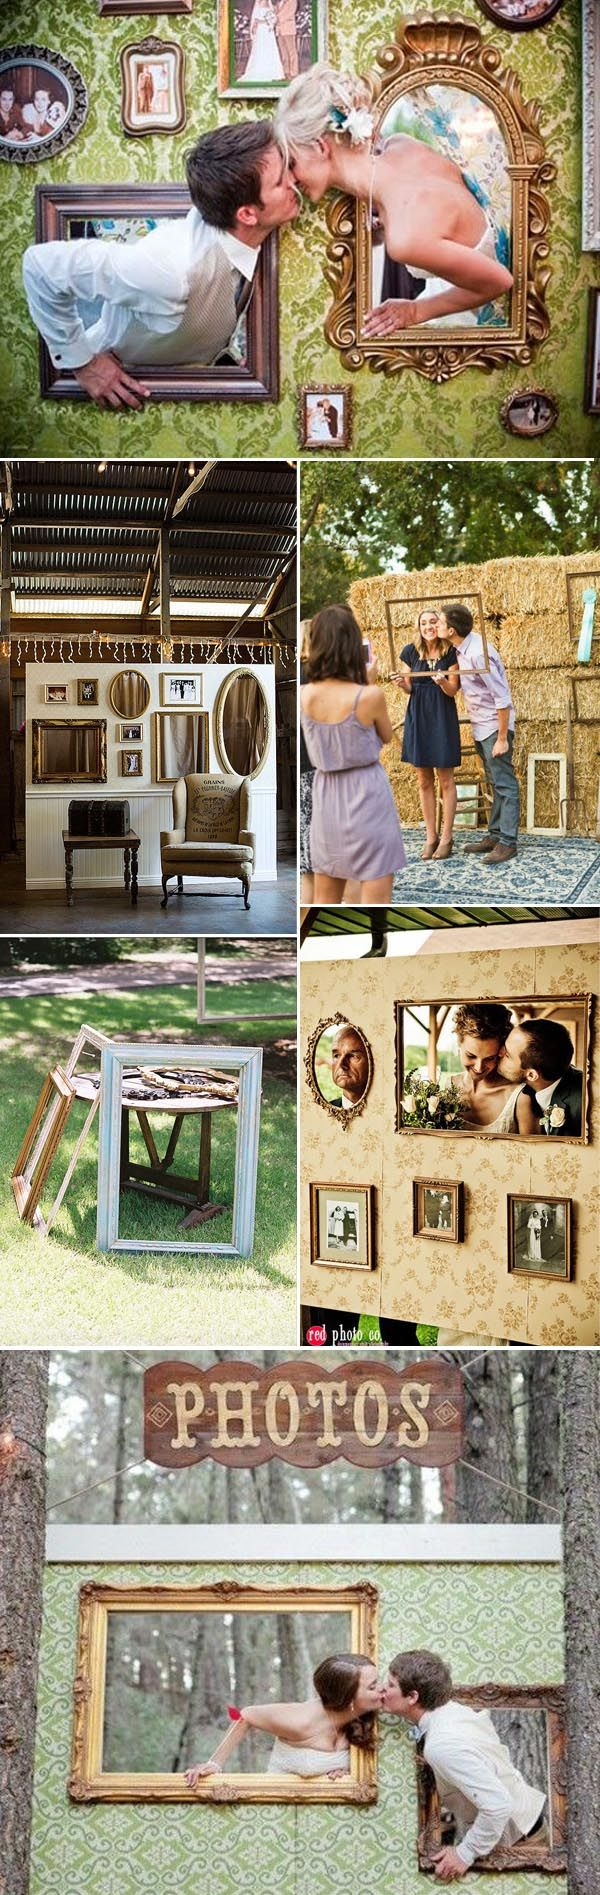 39 creative vintage wedding ideas with photo frames booth ideas